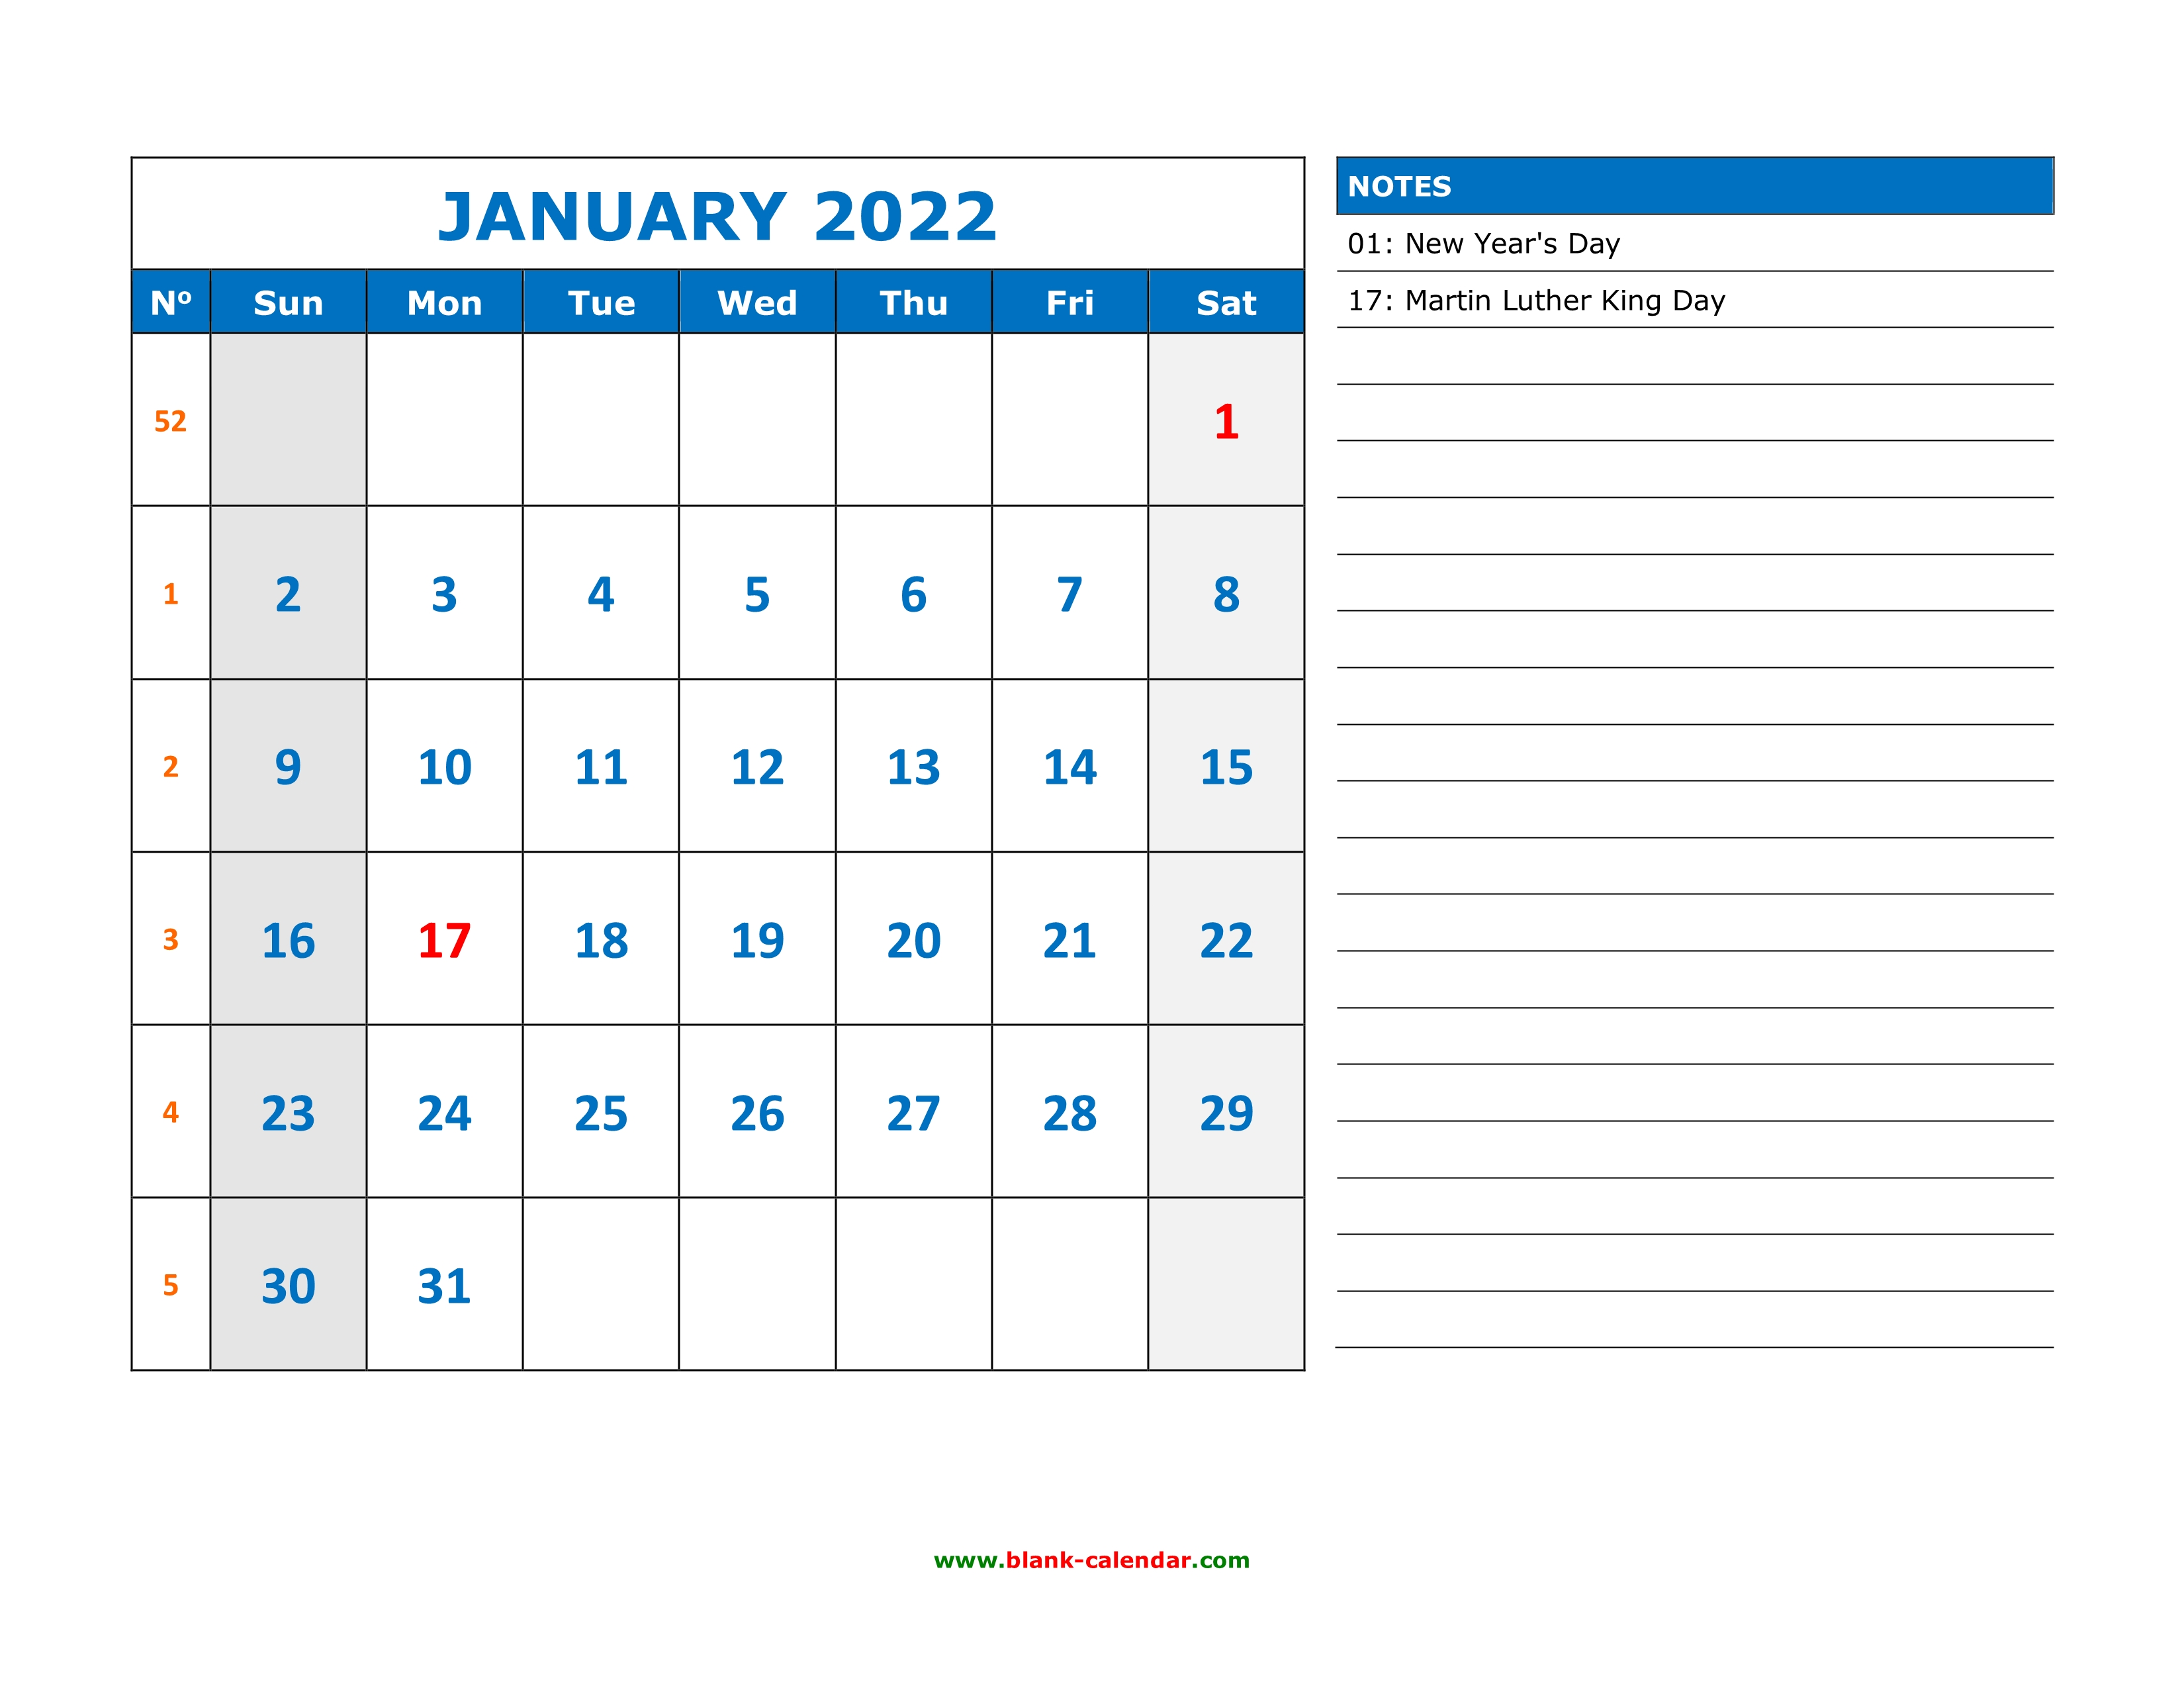 Appointment Calendar 2022.Free Download Printable Calendar 2022 Large Space For Appointment And Notes